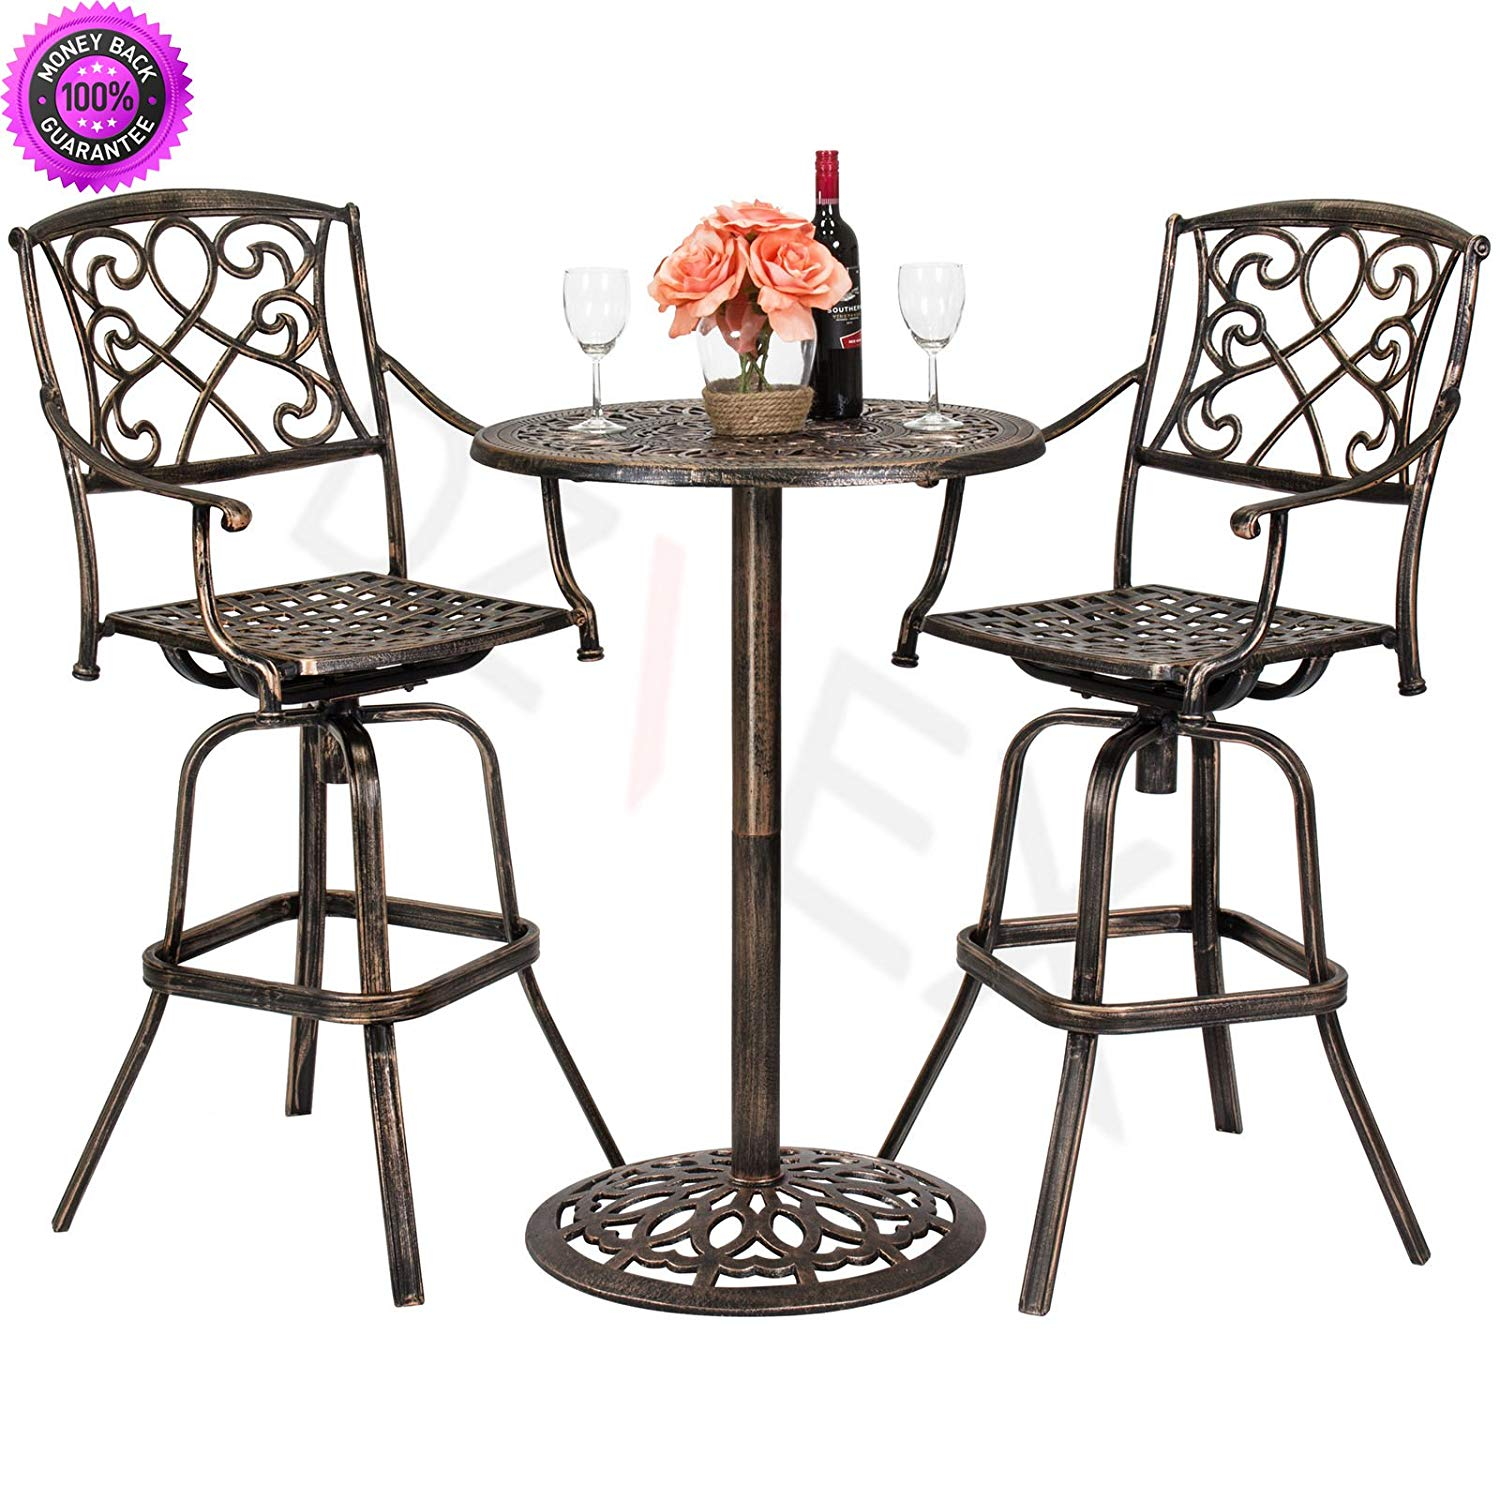 DzVeX Outdoor Patio 3-Piece Cast Aluminum Bistro Set, Table and Chairs And patio dining sets patio furniture home depot patio furniture clearance sale patio furniture sets patio furniture lowes